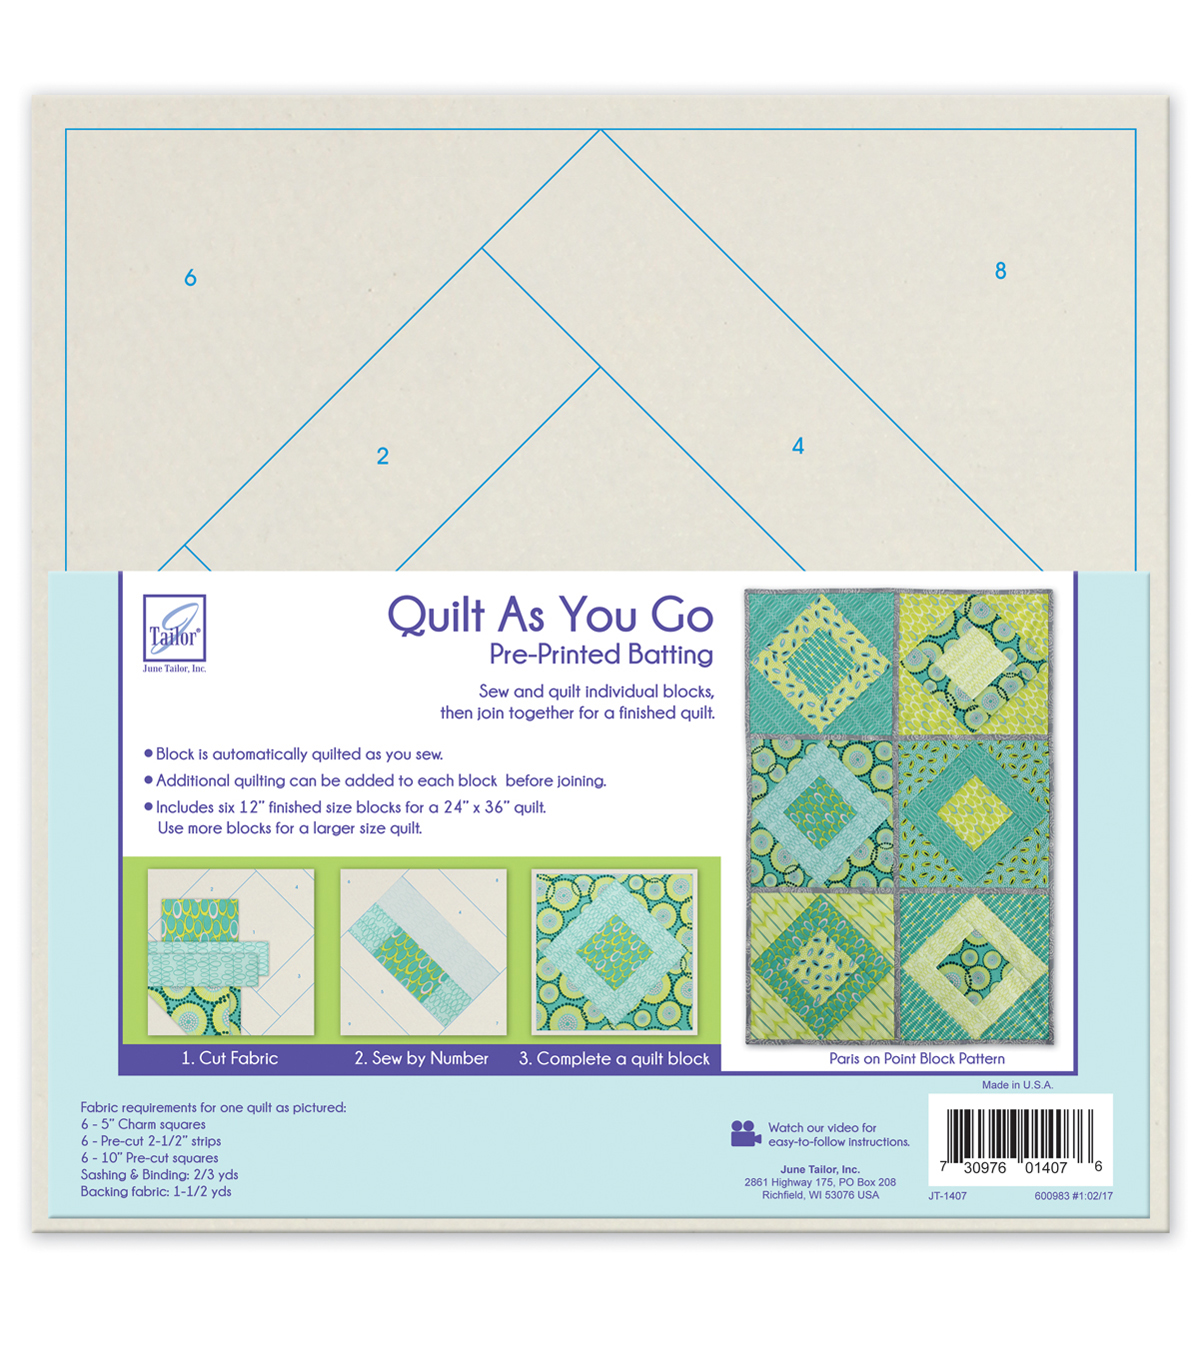 June Tailor Quilt As You Go Batting-Paris On Point